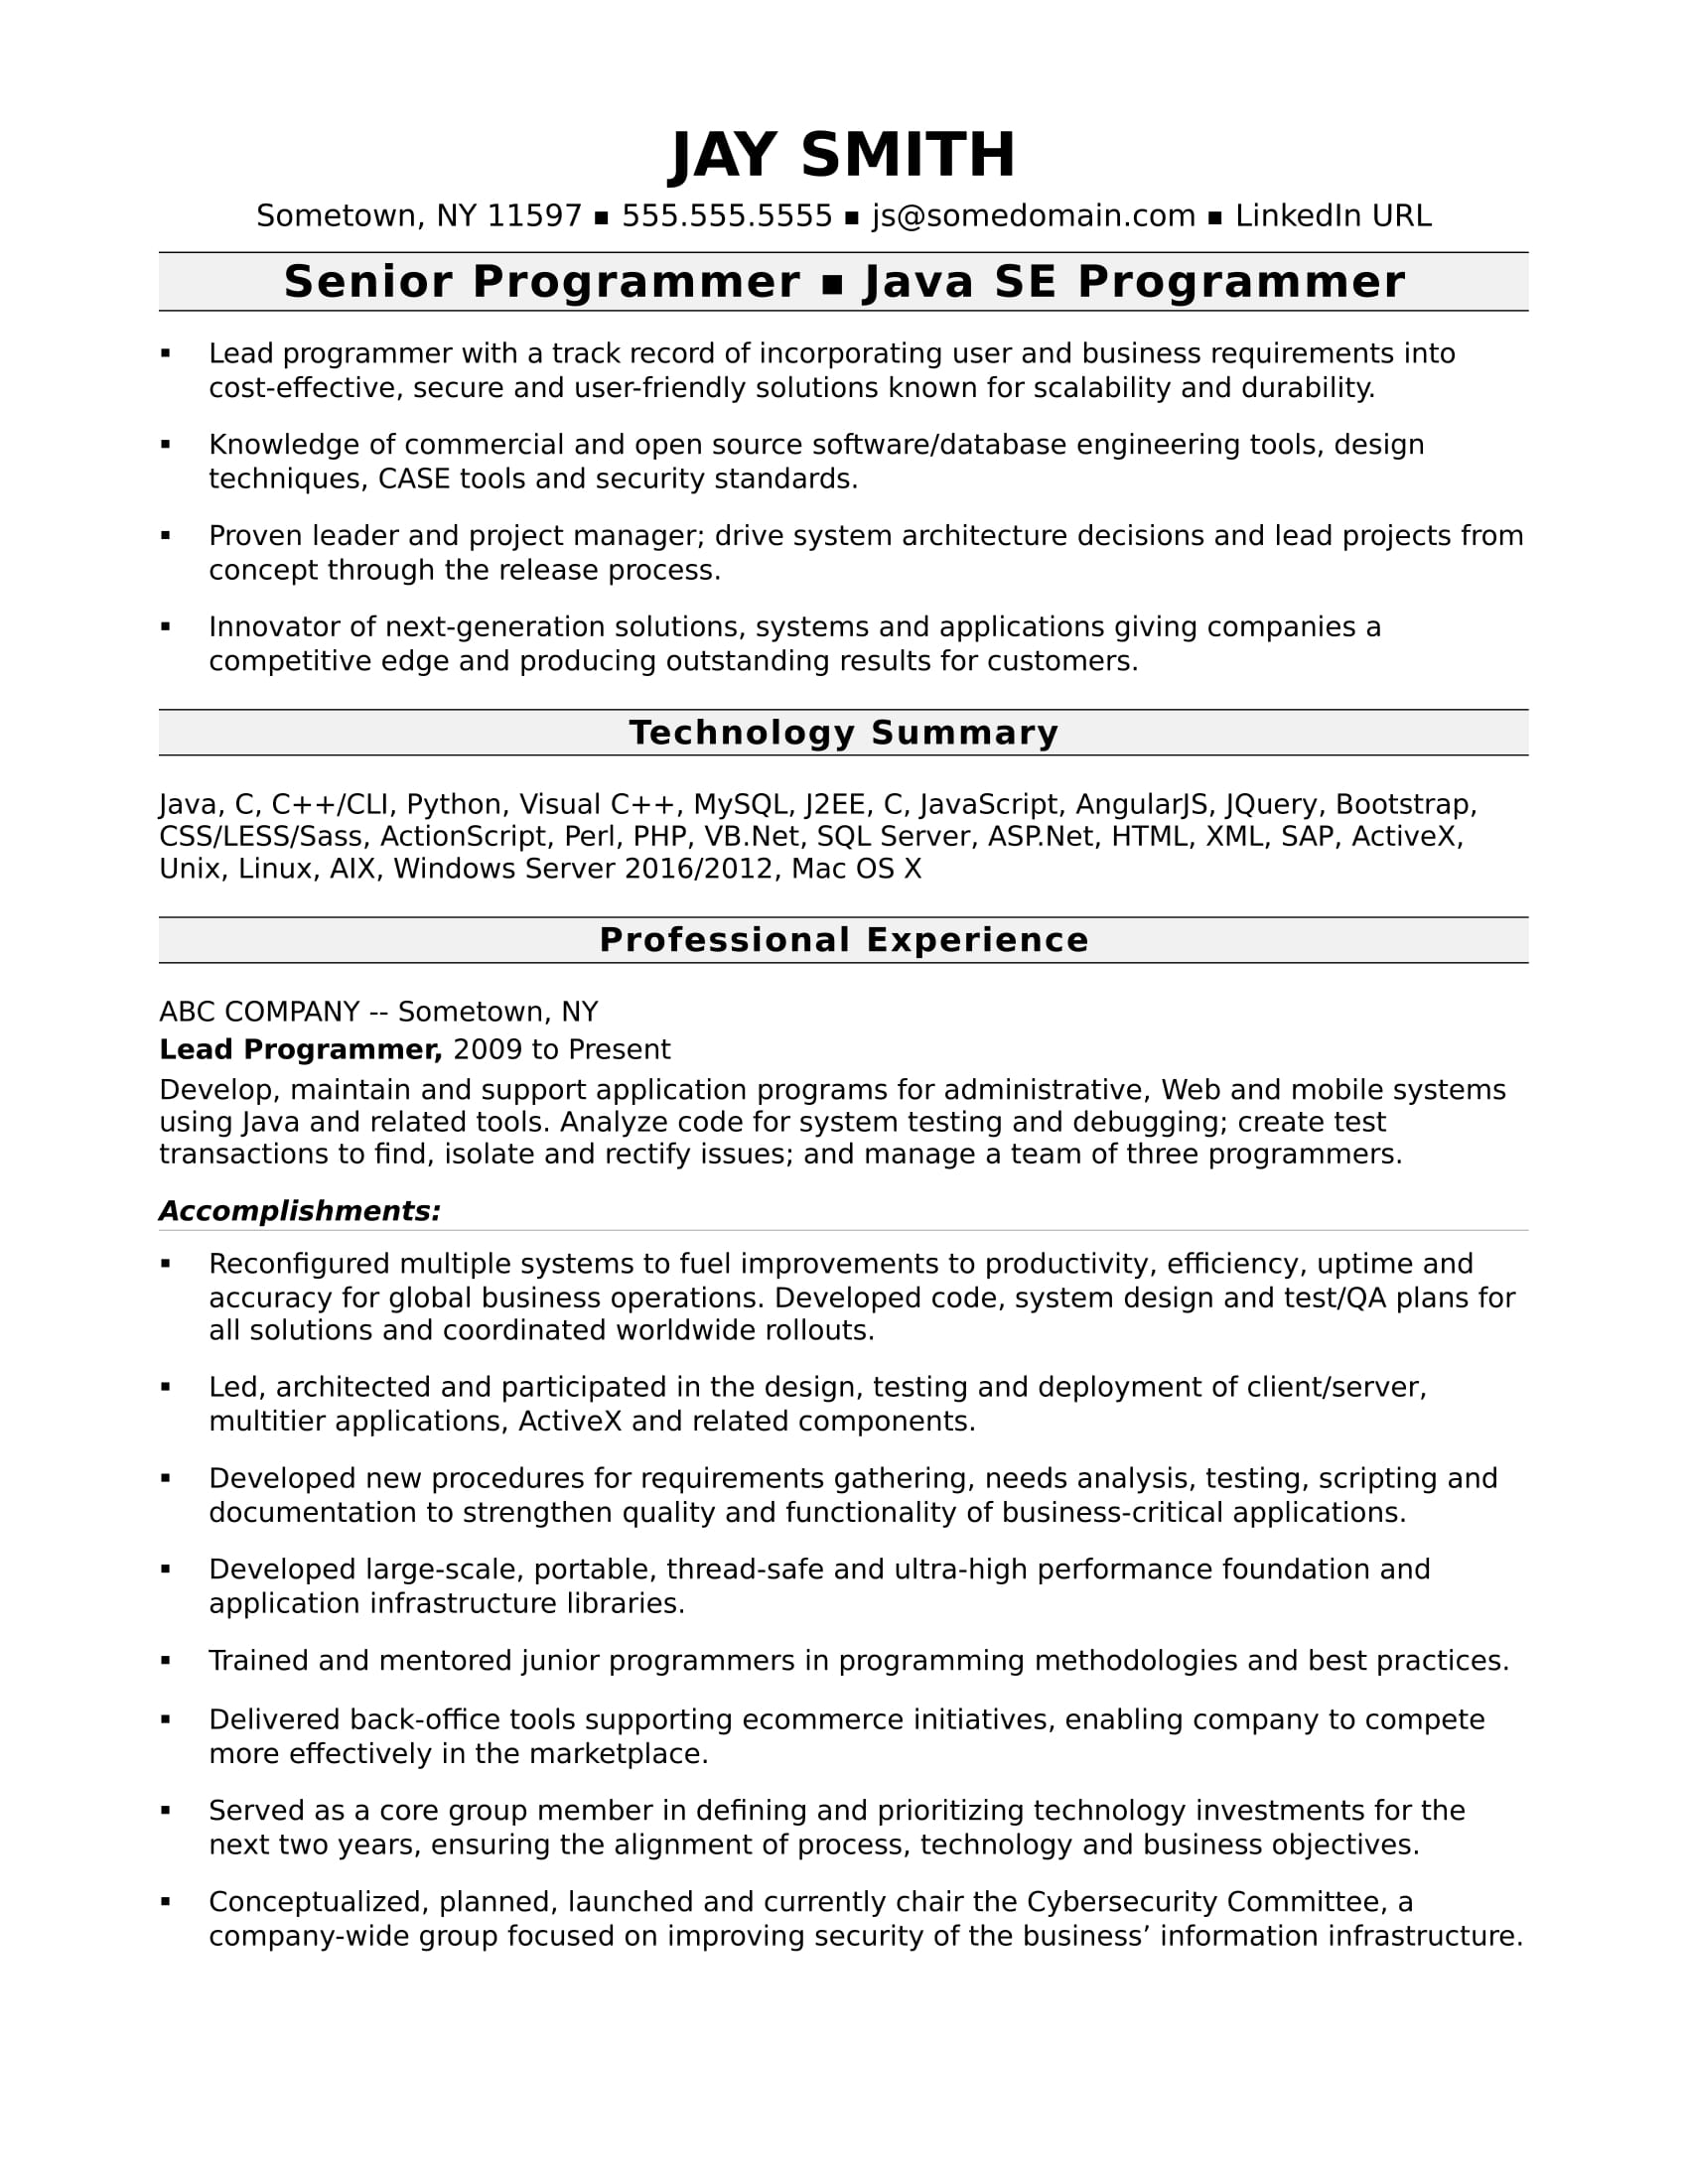 programmer resume template monster projects for computer experienced original templates Resume C++ Projects For Resume